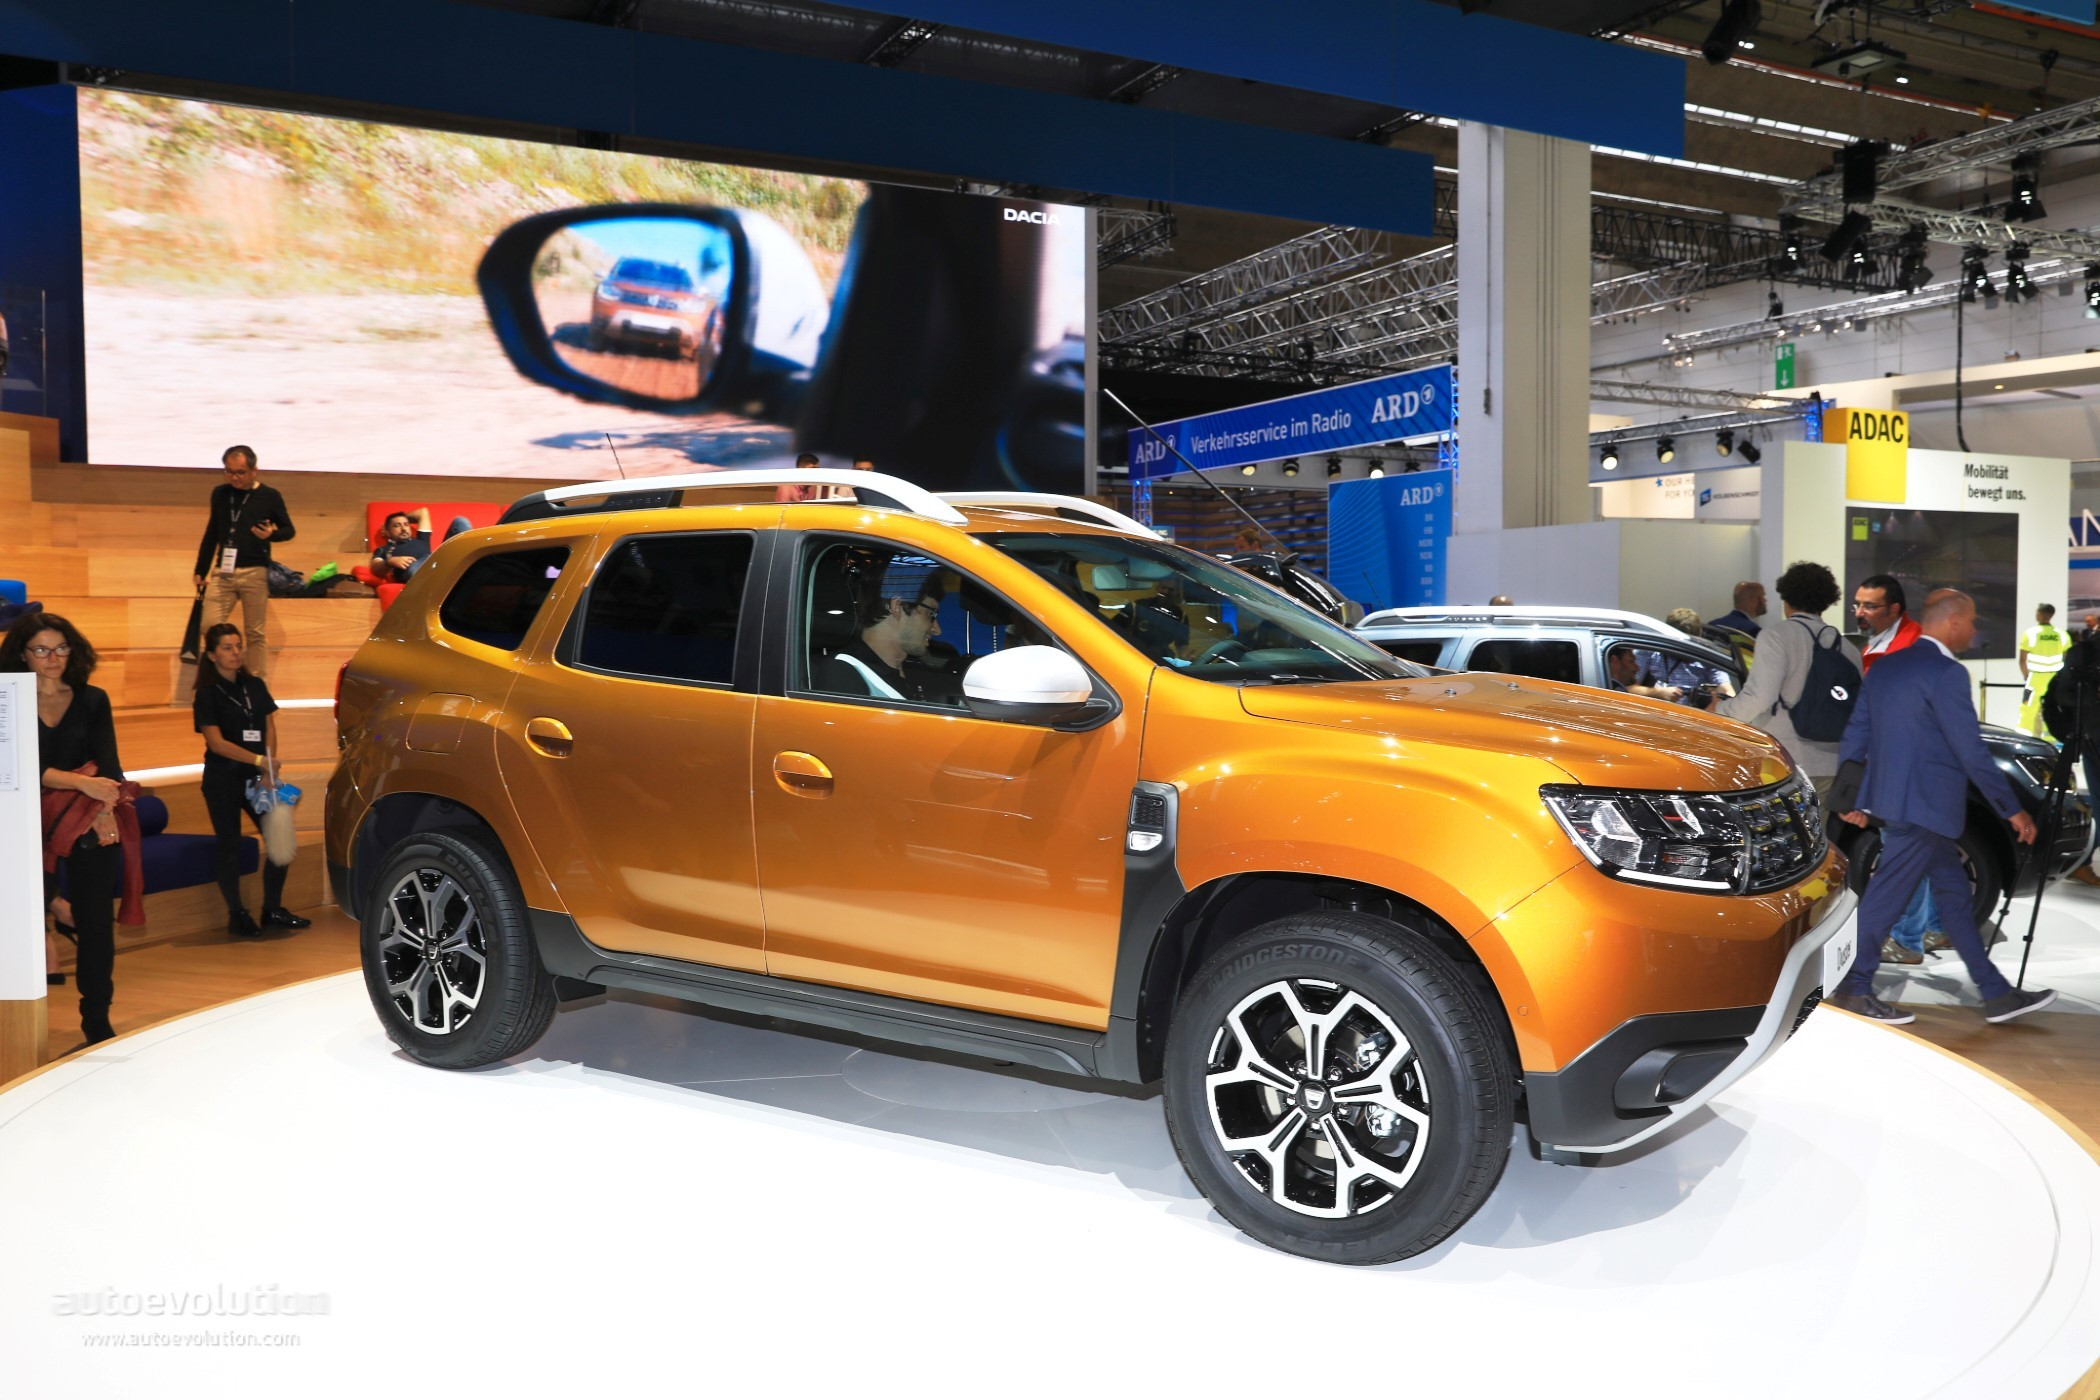 dacia blue dci 1 5 liter turbo diesel introduced to duster. Black Bedroom Furniture Sets. Home Design Ideas